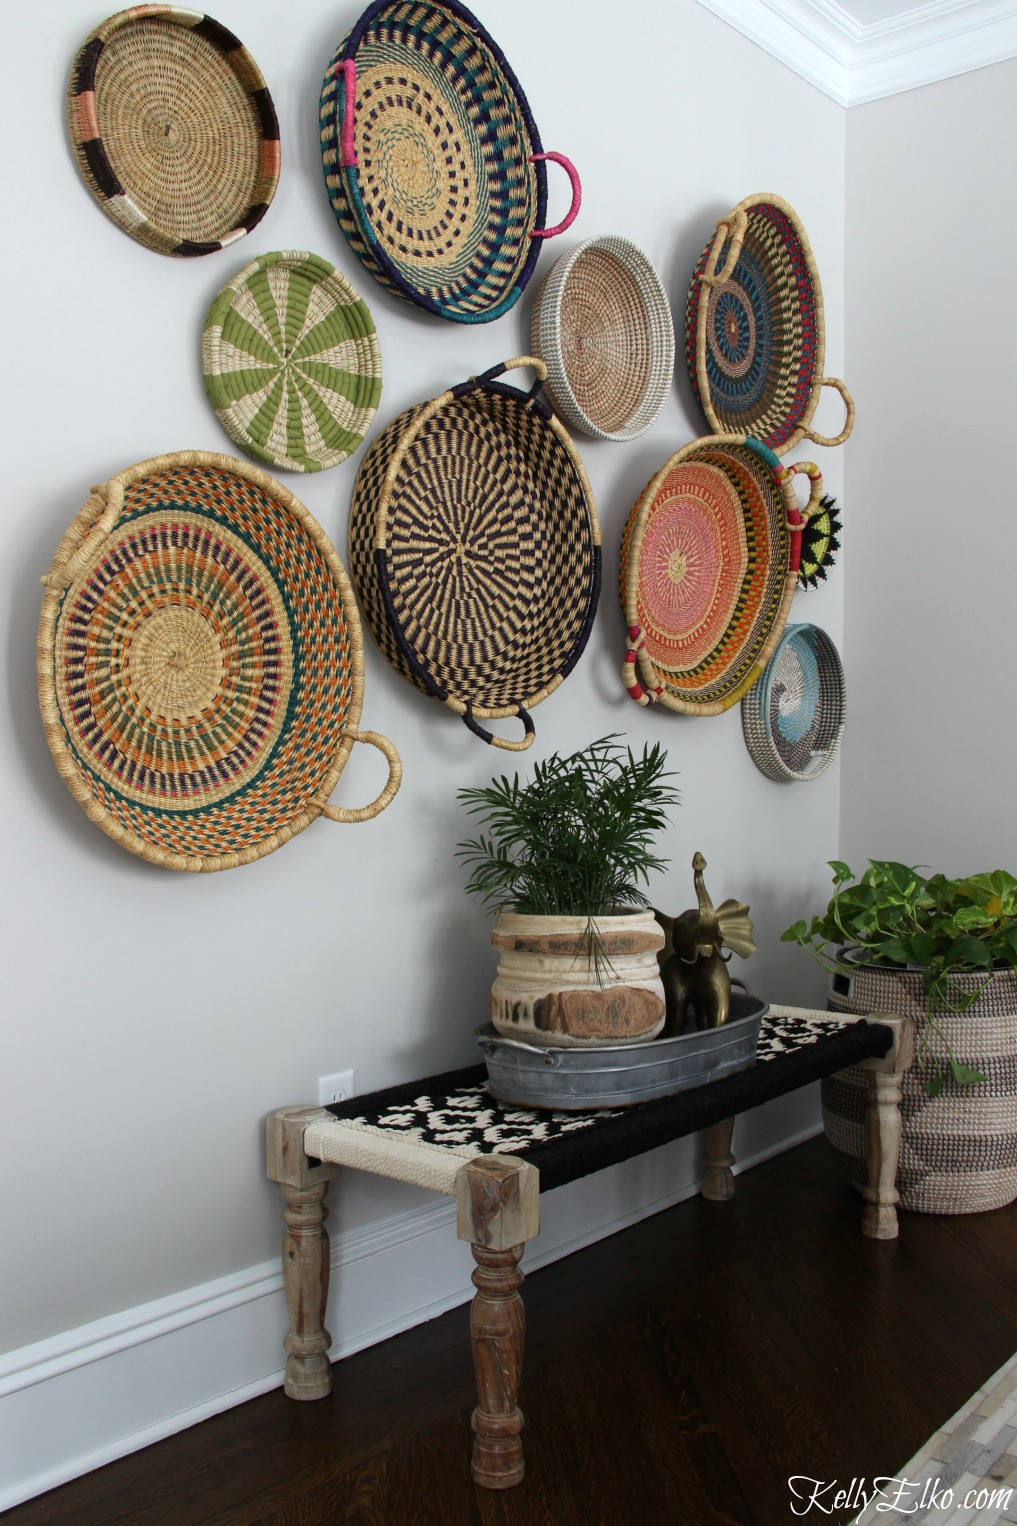 Colorful Basket Gallery Wall - Kelly Elko